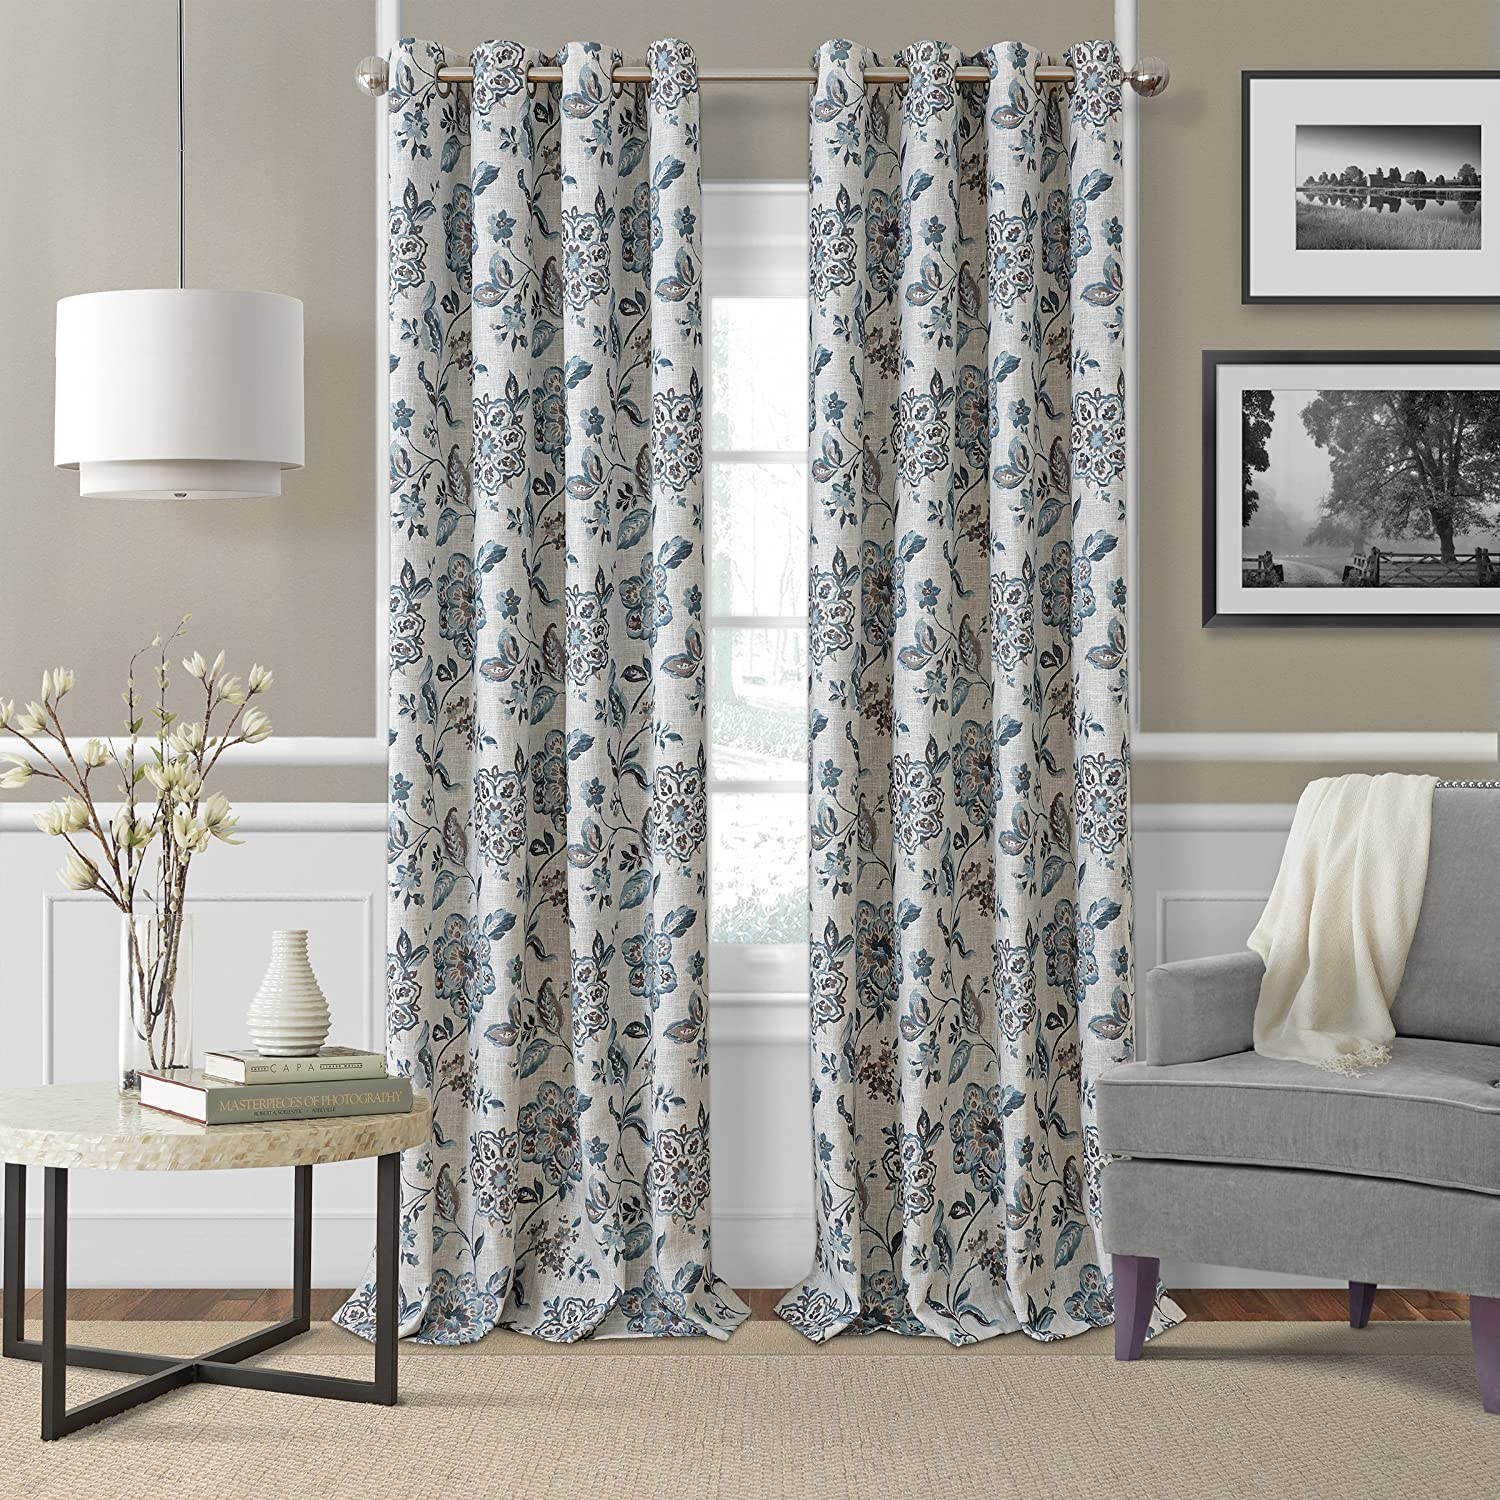 Amazon Com Elrene Home Fashions Room Darkening Grommet Linen Single Panel Window Curtain Drape 52 X84 Blue Taupe Home Kitchen